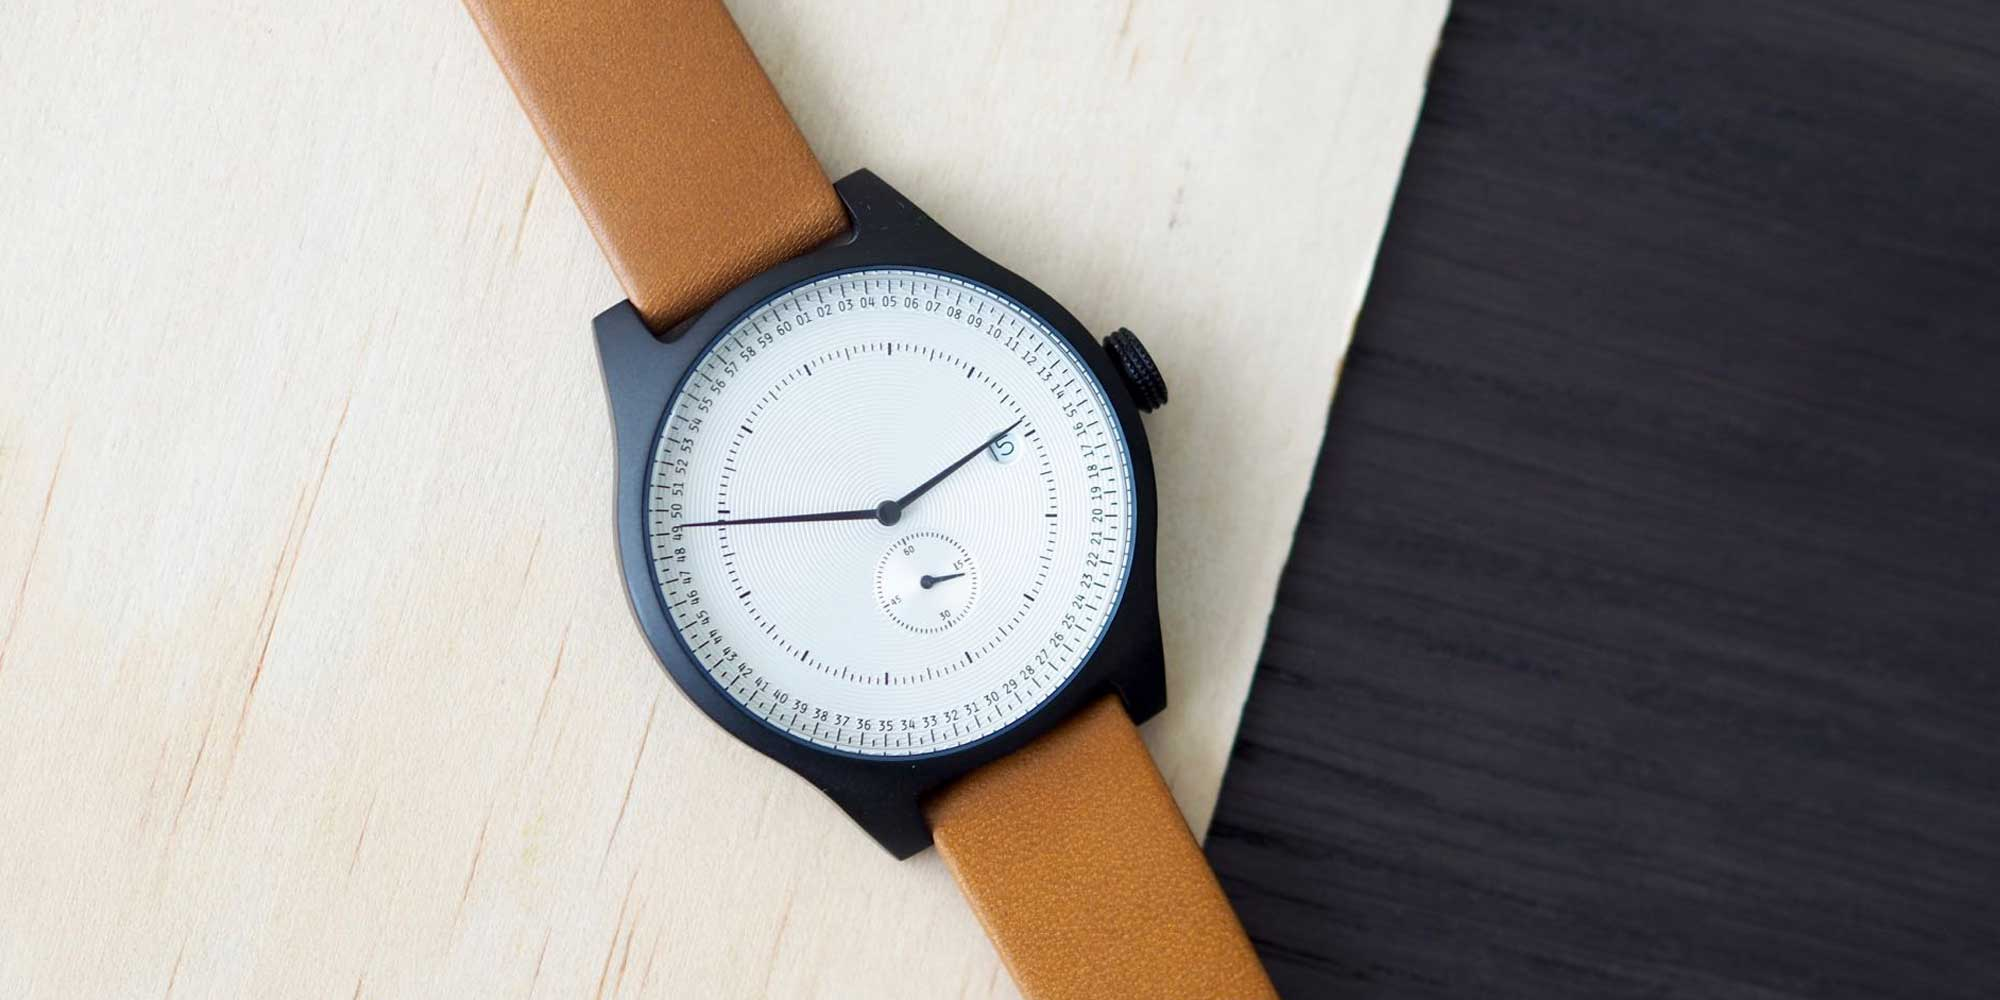 Minimal & Functional Watches by squarestreet